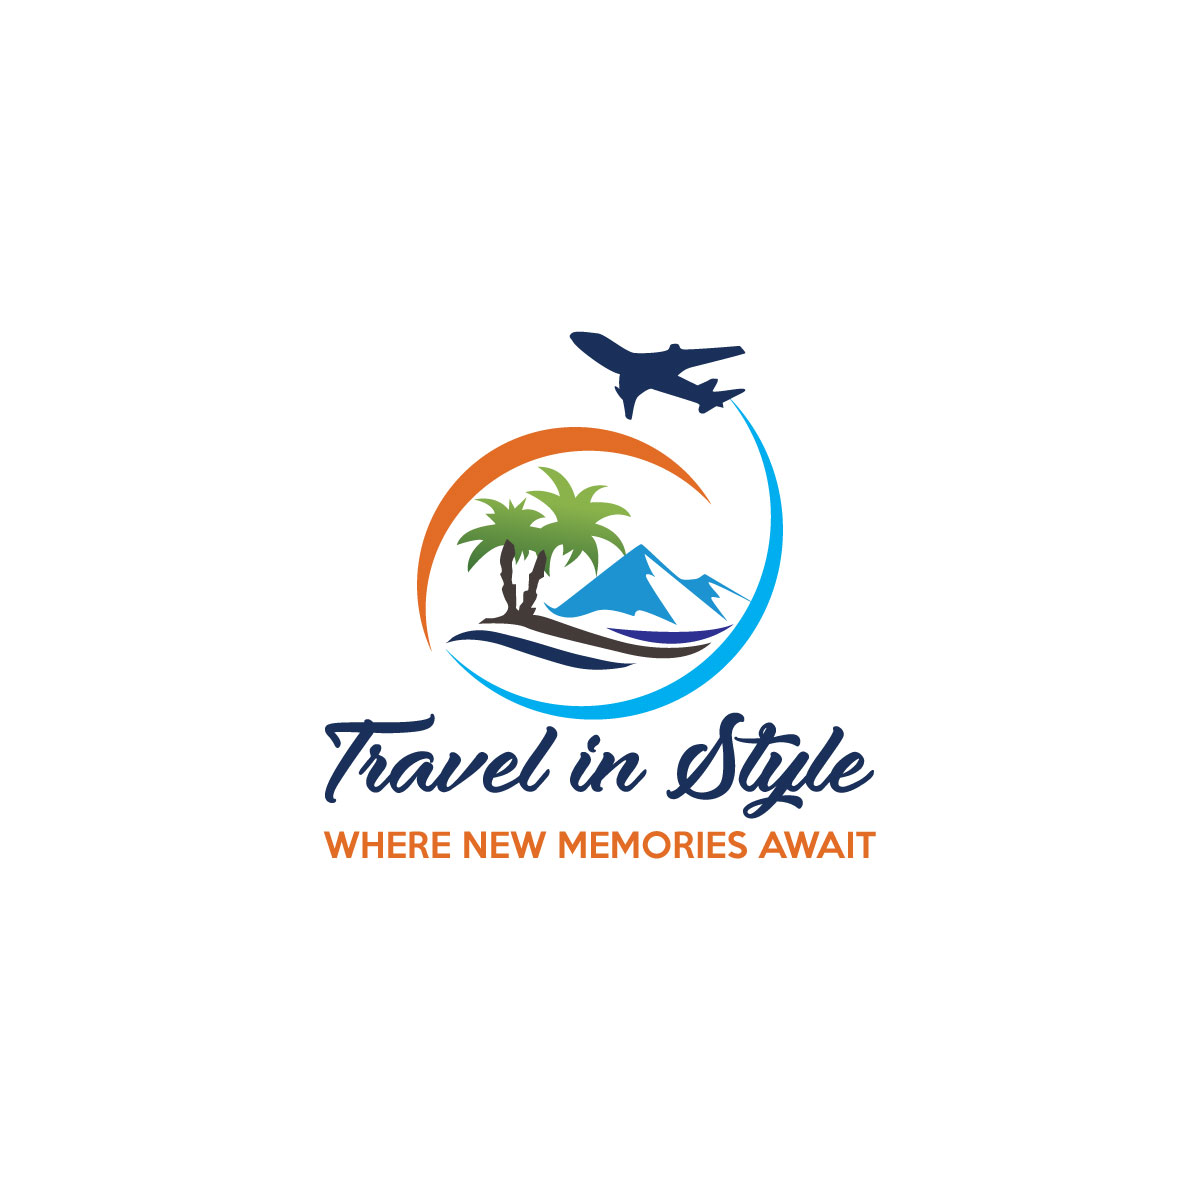 Masculine, Colorful, Travel Agent Logo Design for Travel in.